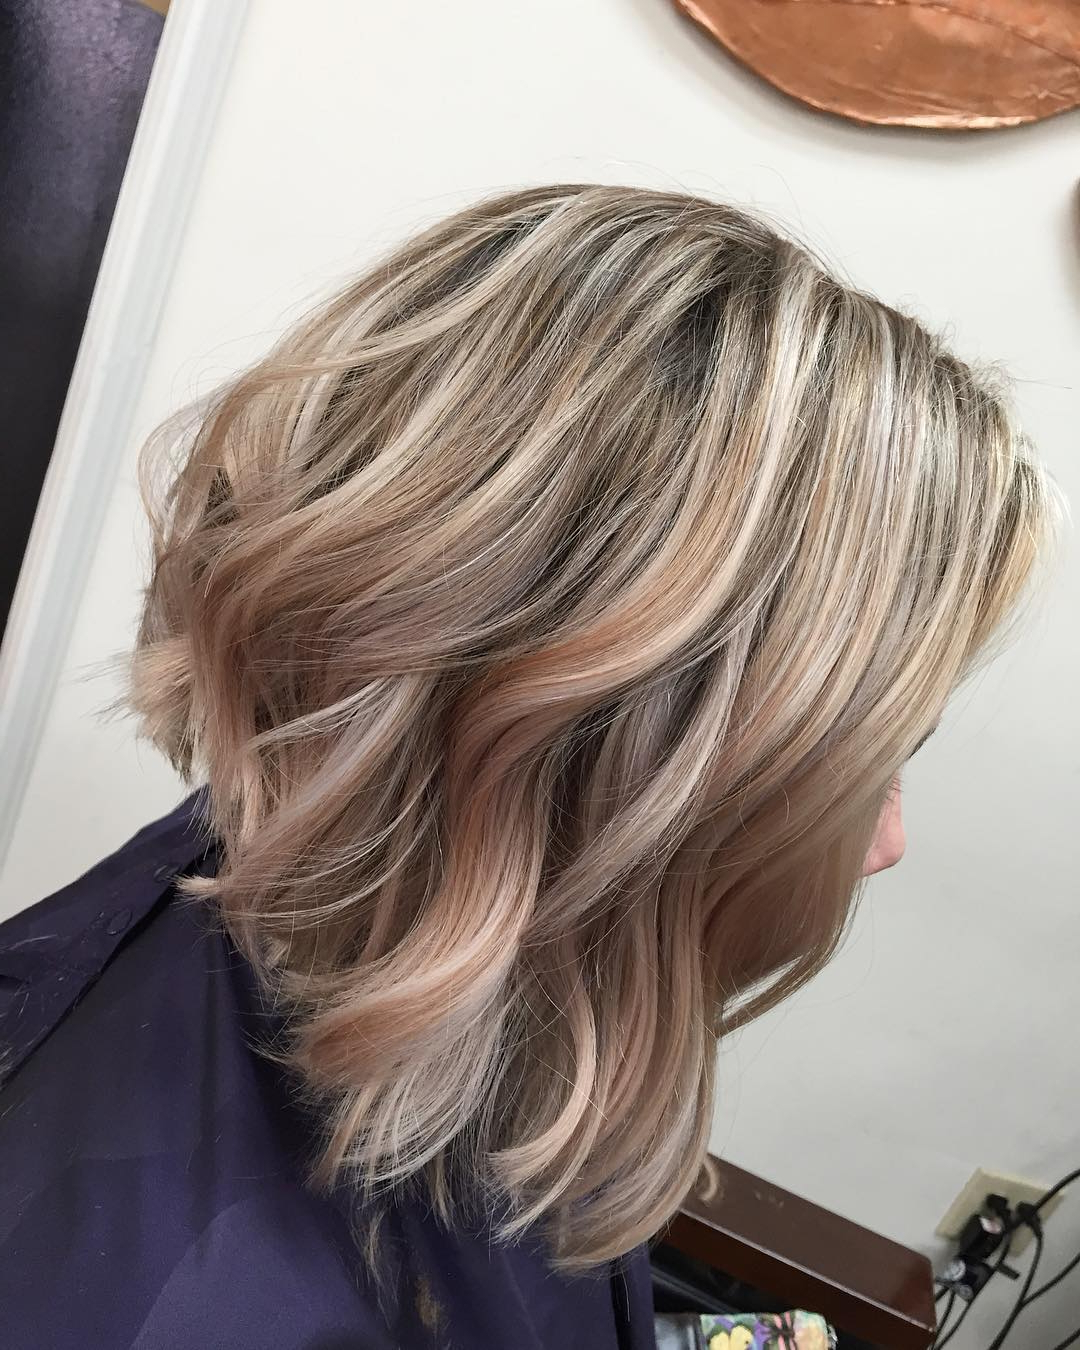 Shoulder Length Stacked Bob Hairstyles 60 Best Bob Pertaining To Popular Short To Medium Bob Hairstyles (View 9 of 21)